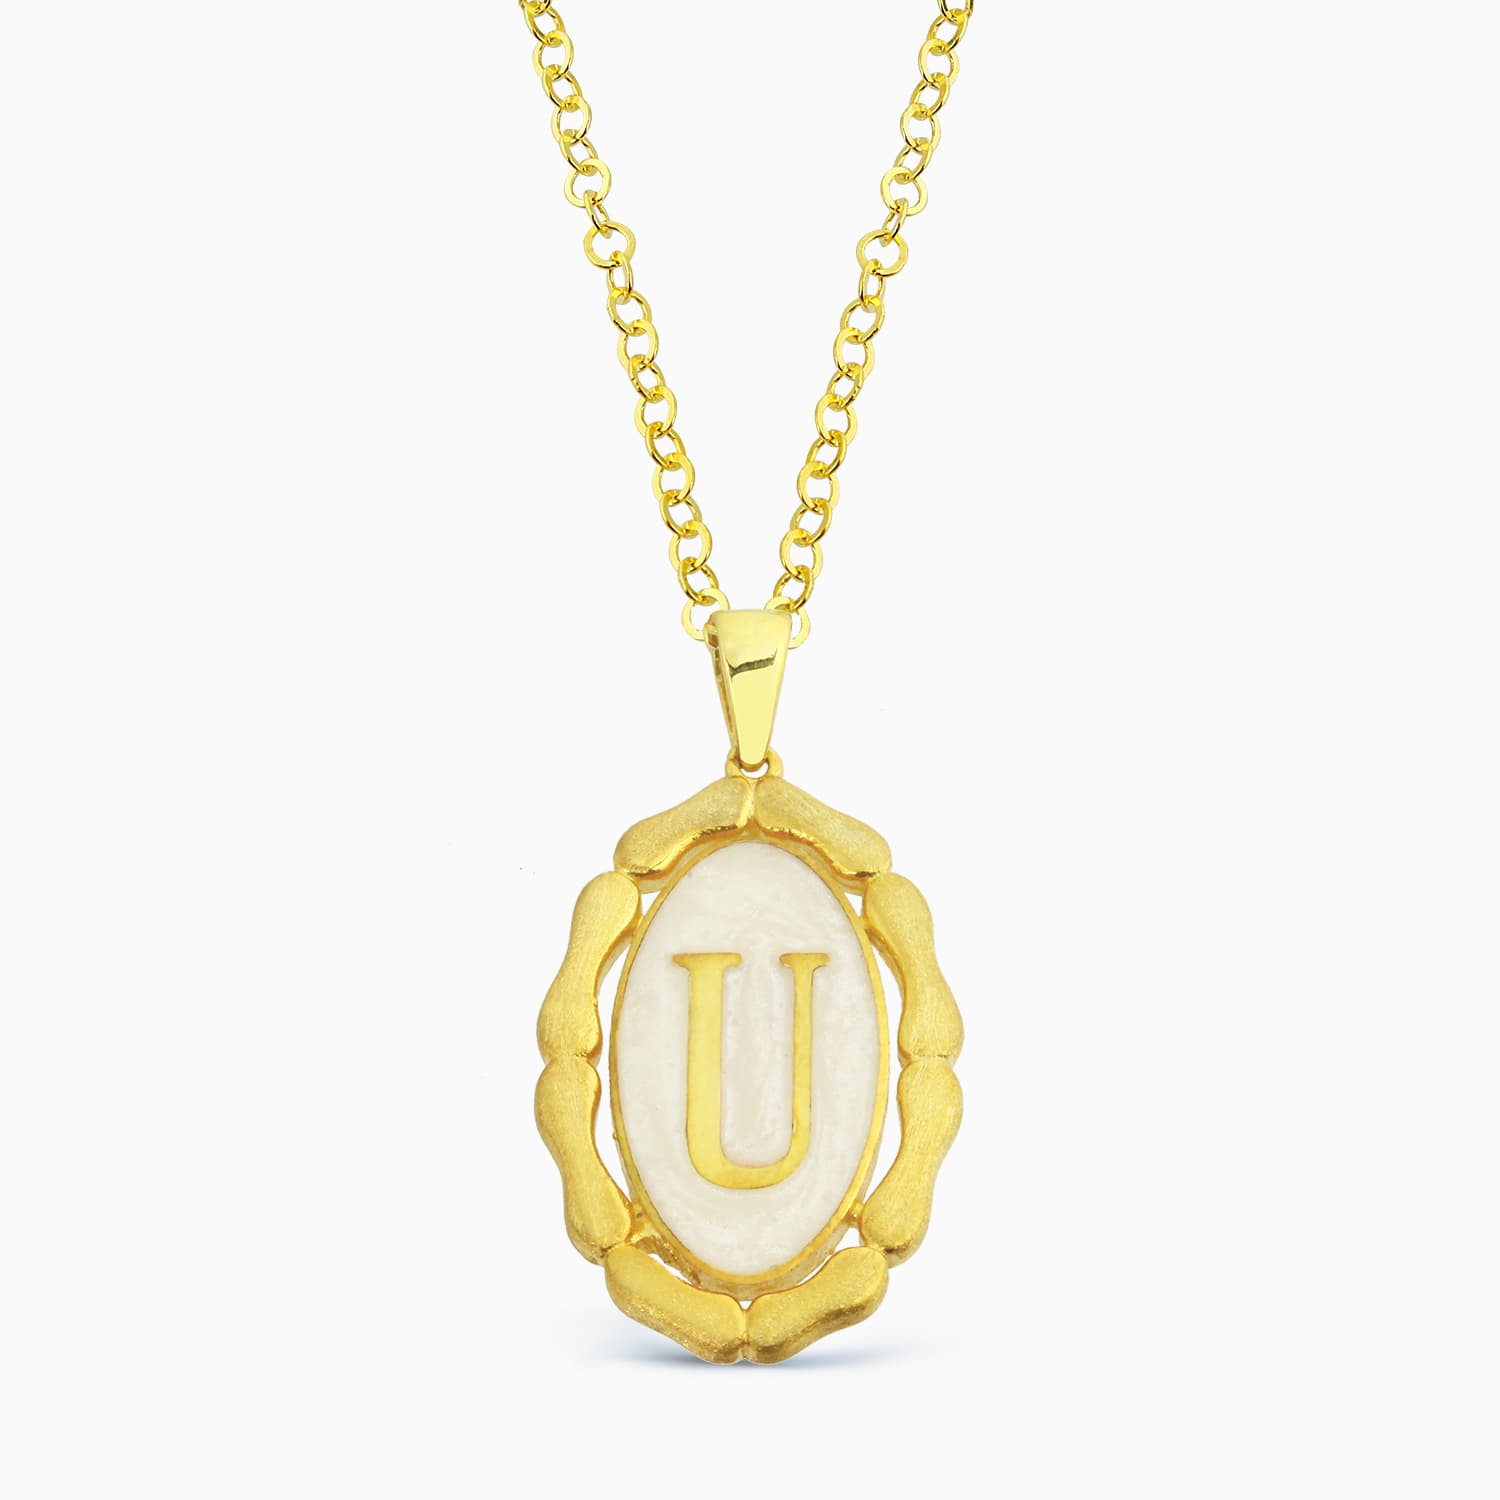 LETTER U MINNED NECKLACE